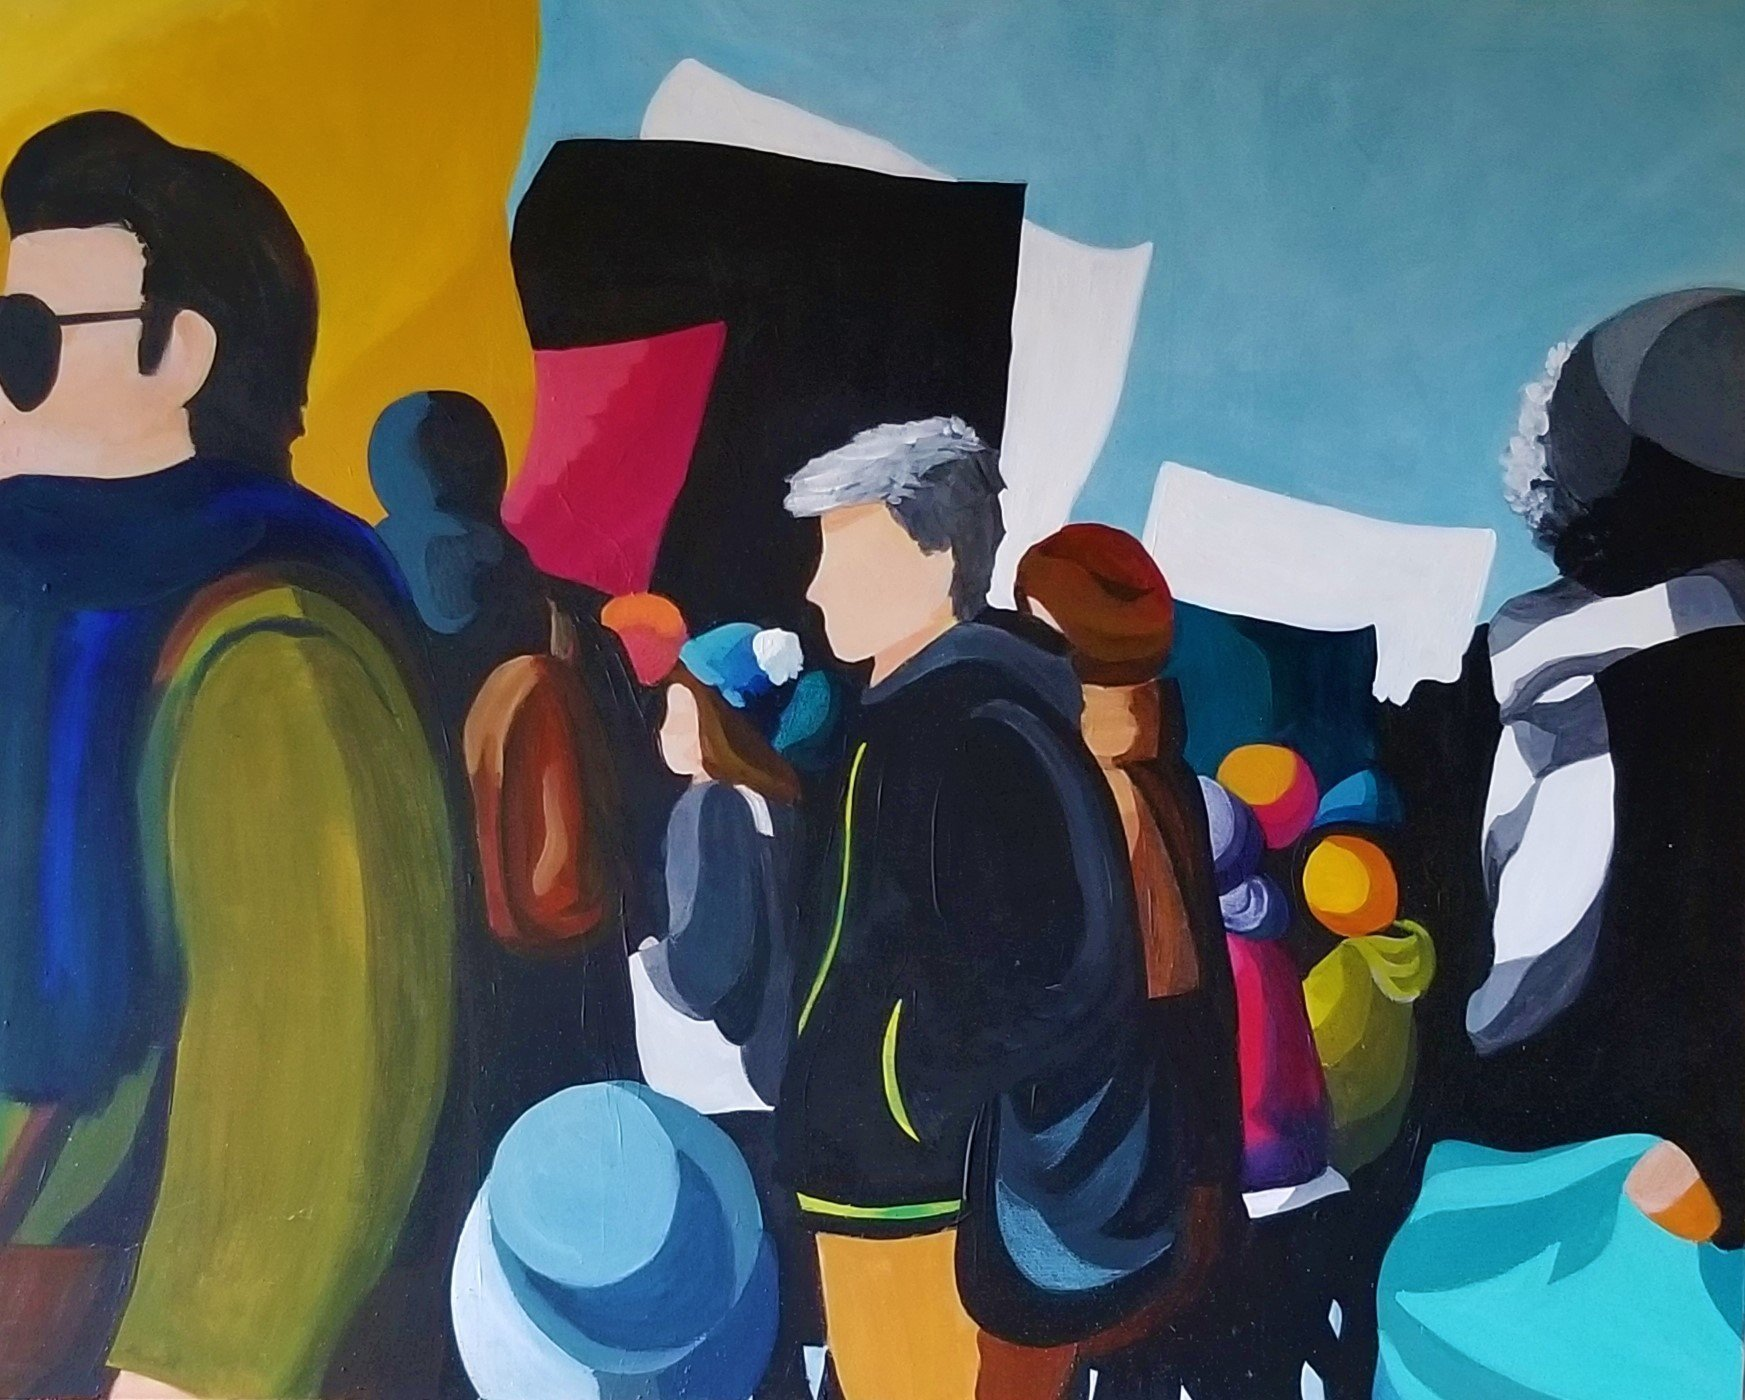 Denise Dalzell; Spectators, 2019, Original Painting Acrylic, 30 x 24 inches. Artwork description: 241 painting, spectators, illustration, expressionism, pop art, modern, realism, people, protestA scene of a protest passing through a crowd of spectators. ...